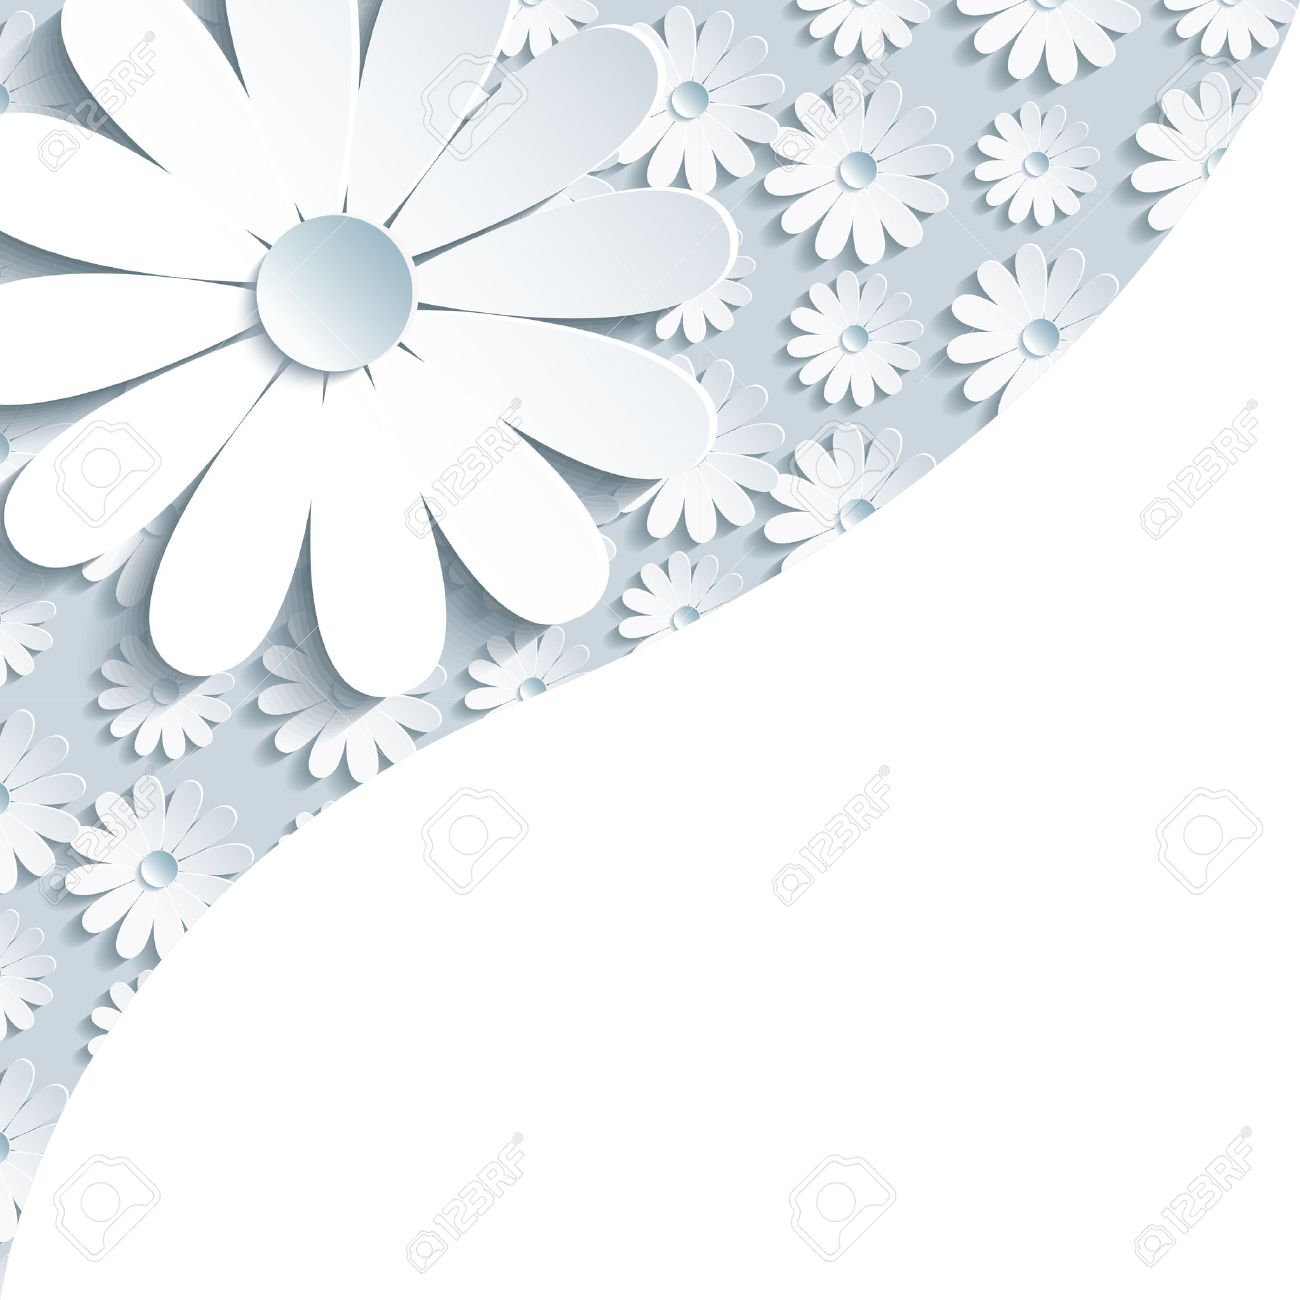 Stylish Creative Gray Background With 3d White Chamomile Floral Modern Wallpaper Place For Text Vector Illustration